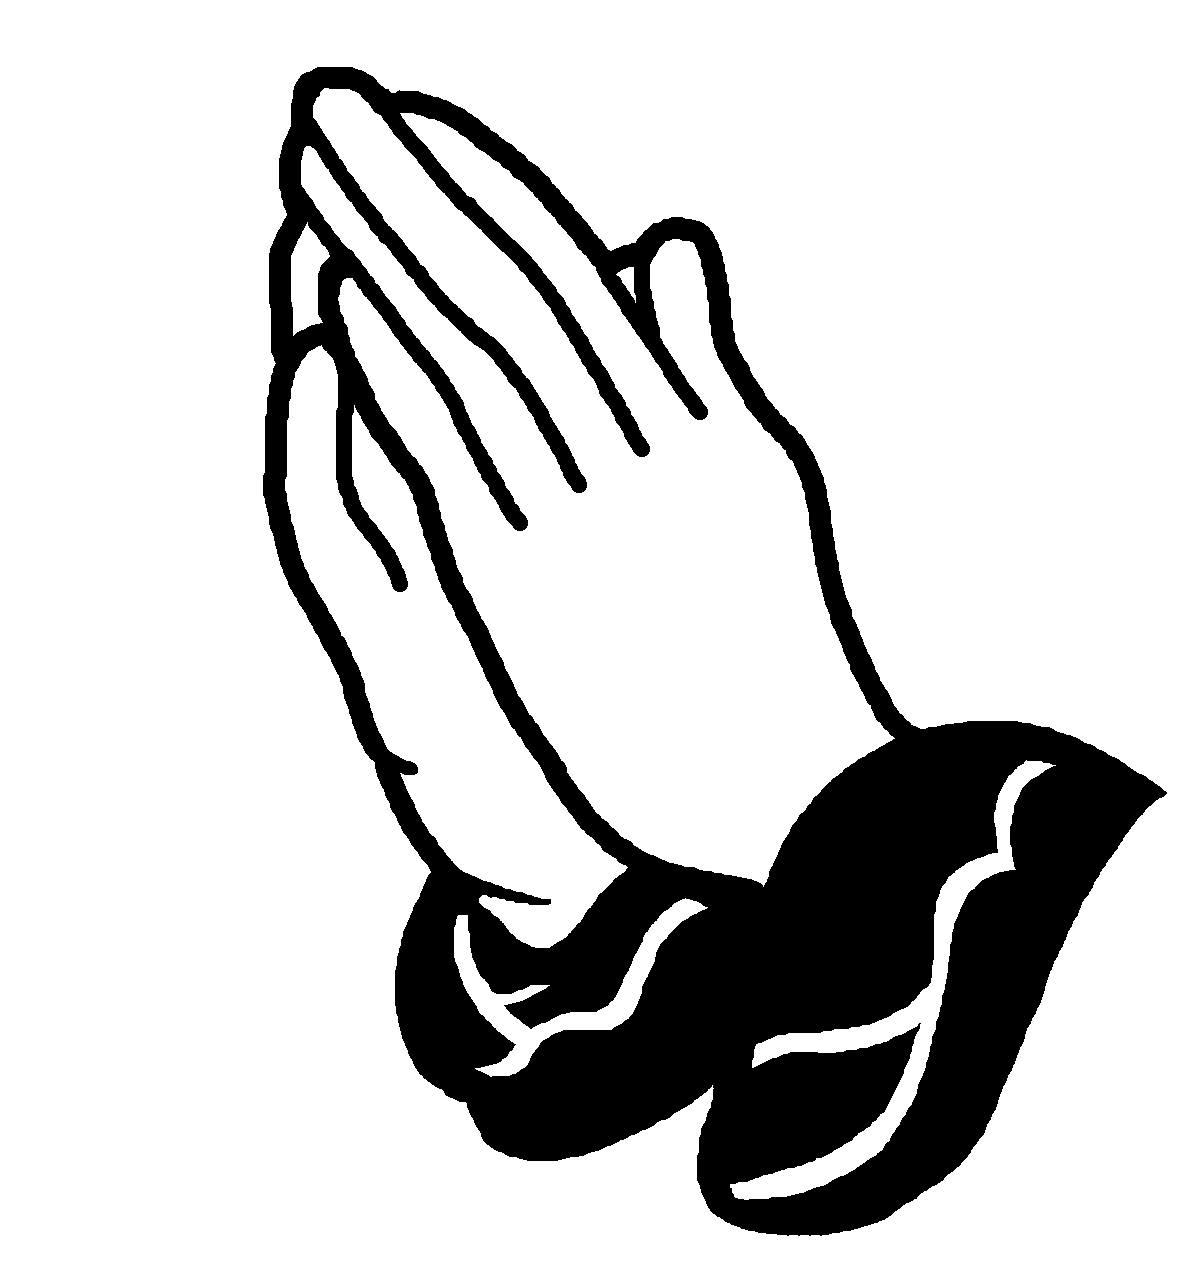 1200x1268 Clip Art Prayer Black Praying Hands Clip Art Download Kneeling